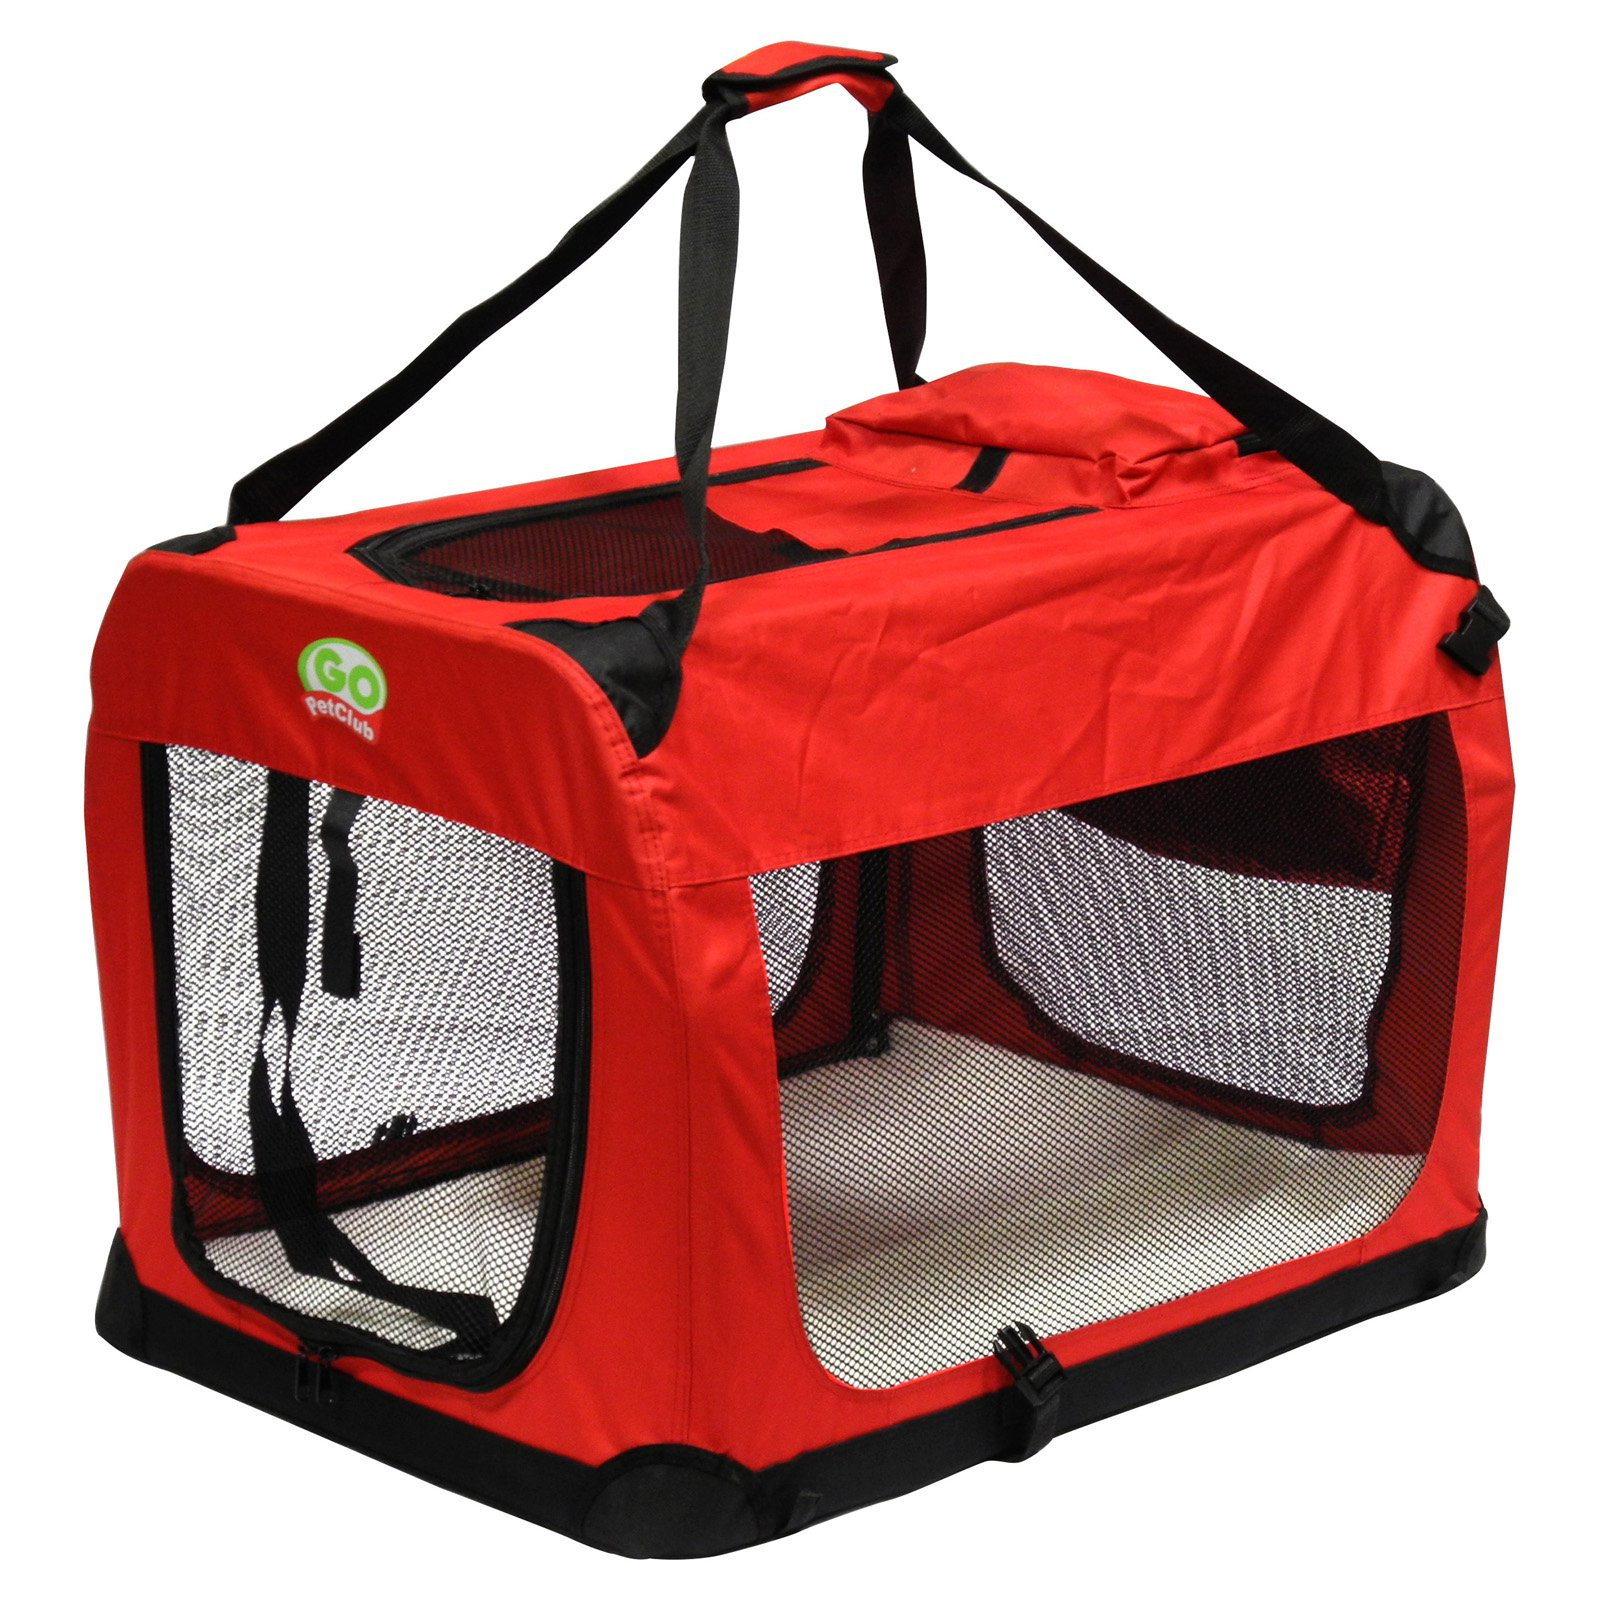 Automotive Pet Containment Barrier Kennel Dogs Carrier Petyoung Collapsible Travel Pet Tube Portable Breathable Car Kennel Crate